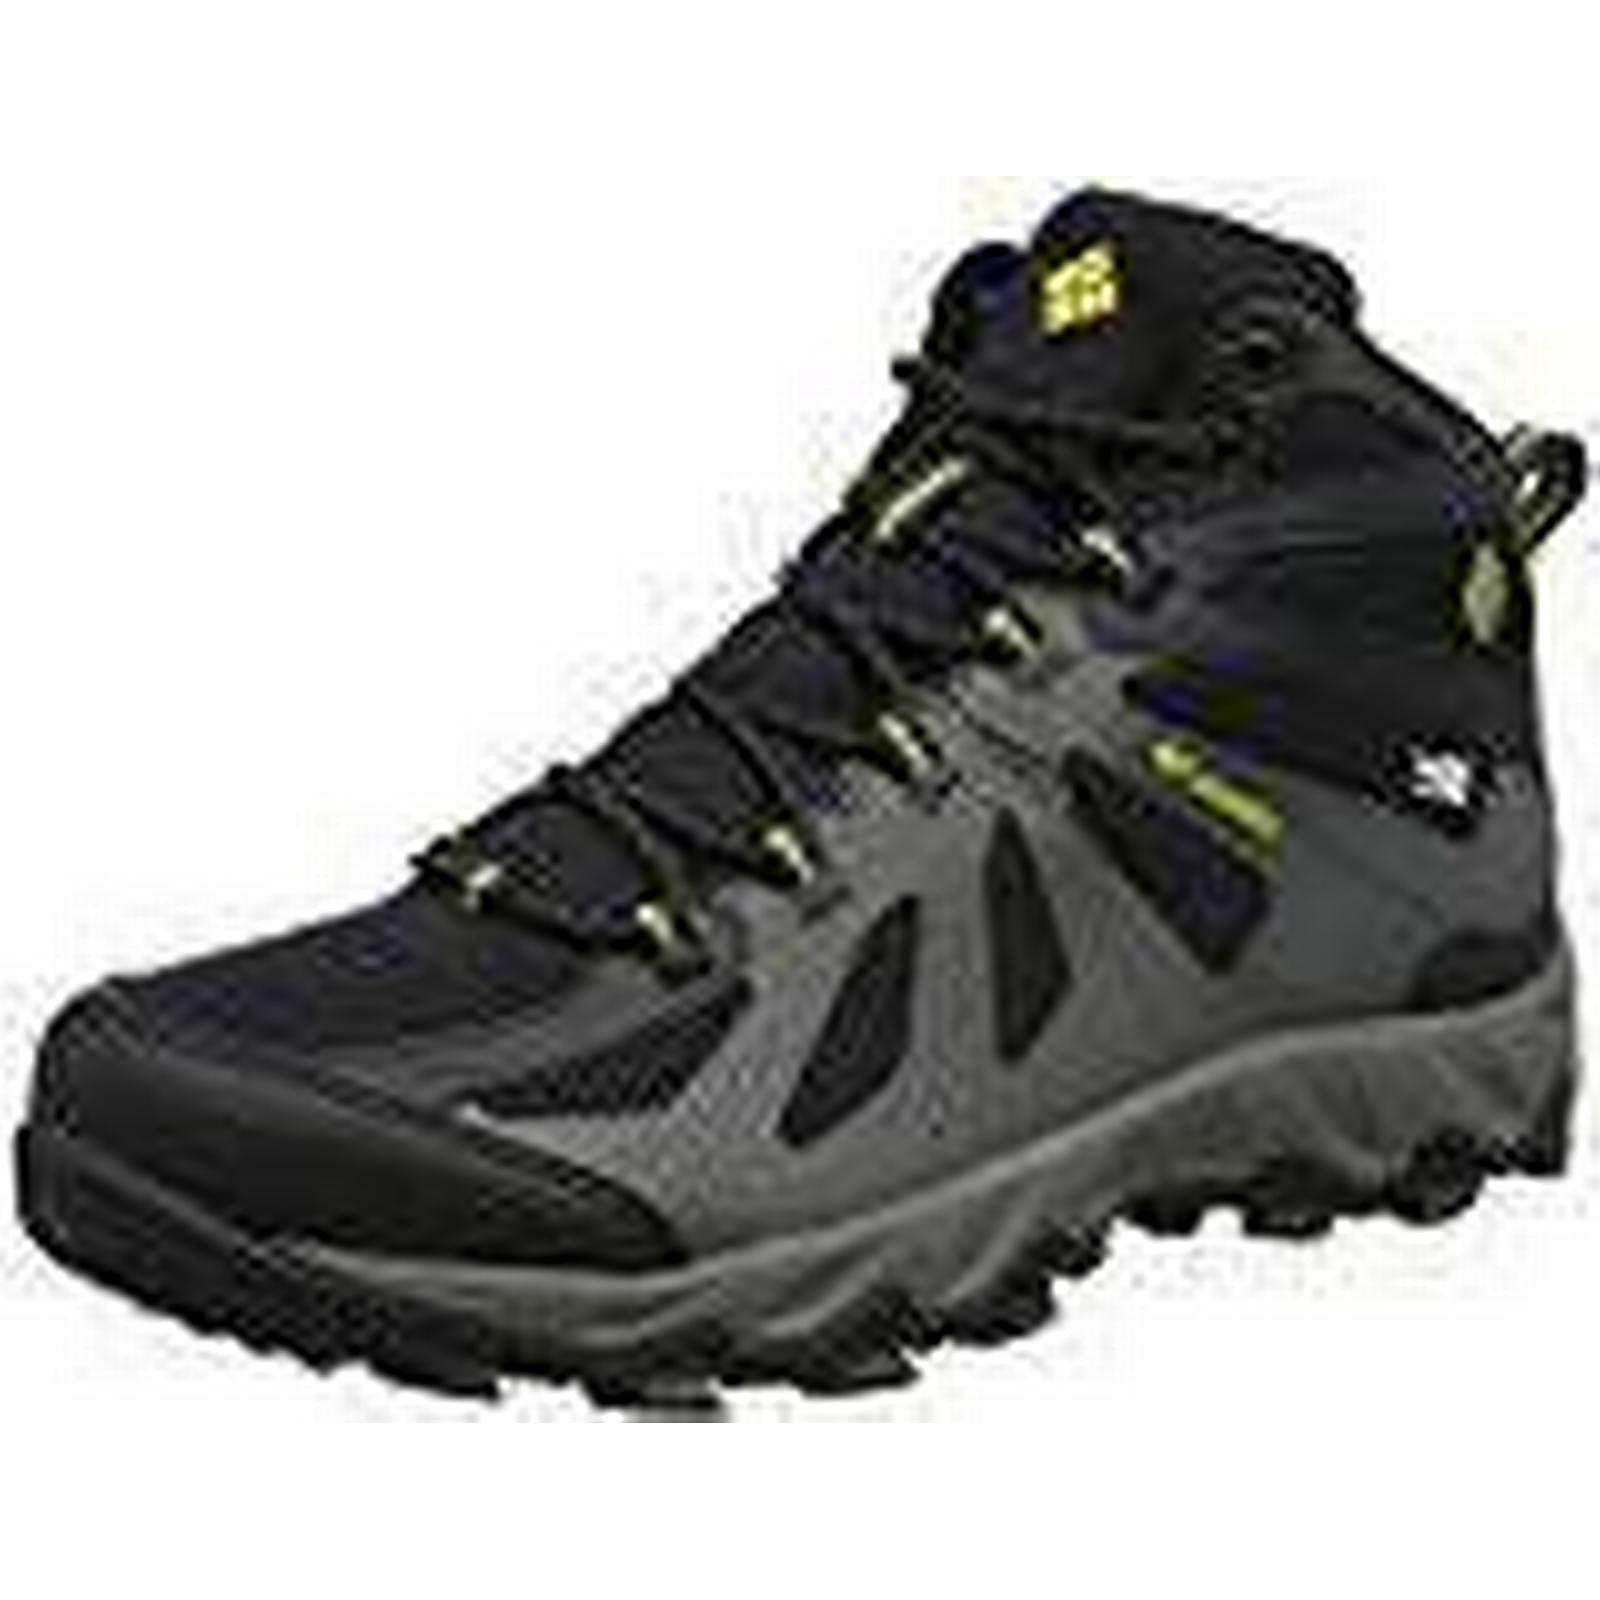 Columbia Men's Mid Peakfreak XCRSN Ii Xcel Mid Men's Outdry High Rise Hiking Boots (Black/Zour), 13 UK 47 EU 30dbc0